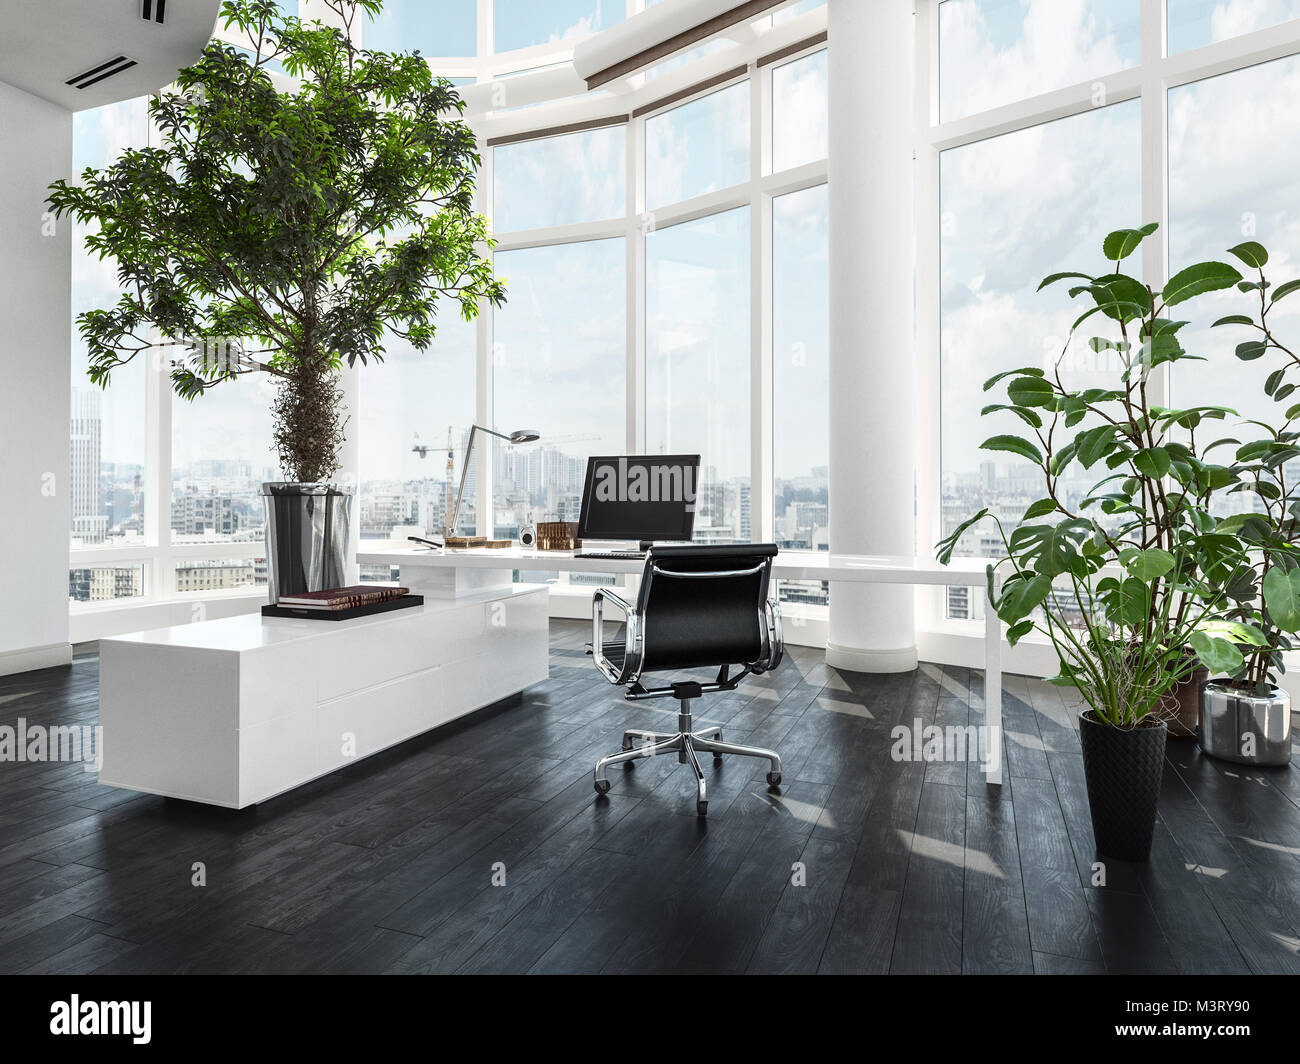 Modern luxury office interior in a pent house with curved white walls and windows overlooking a city and large green potted plants 3d rendering